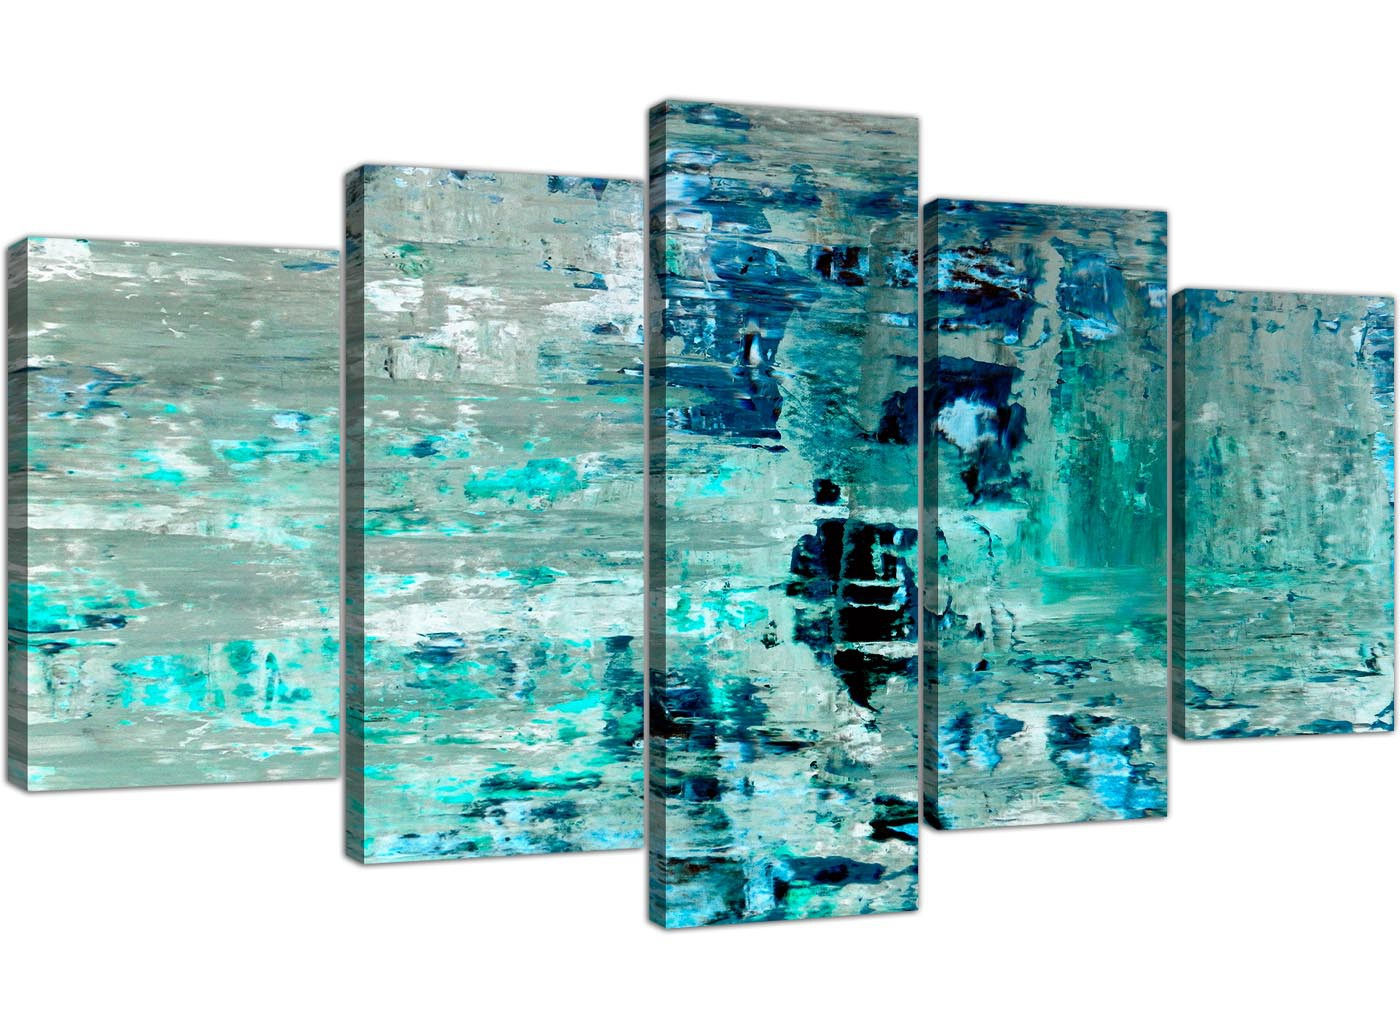 Extra Large Turquoise Teal Abstract Painting Wall Art